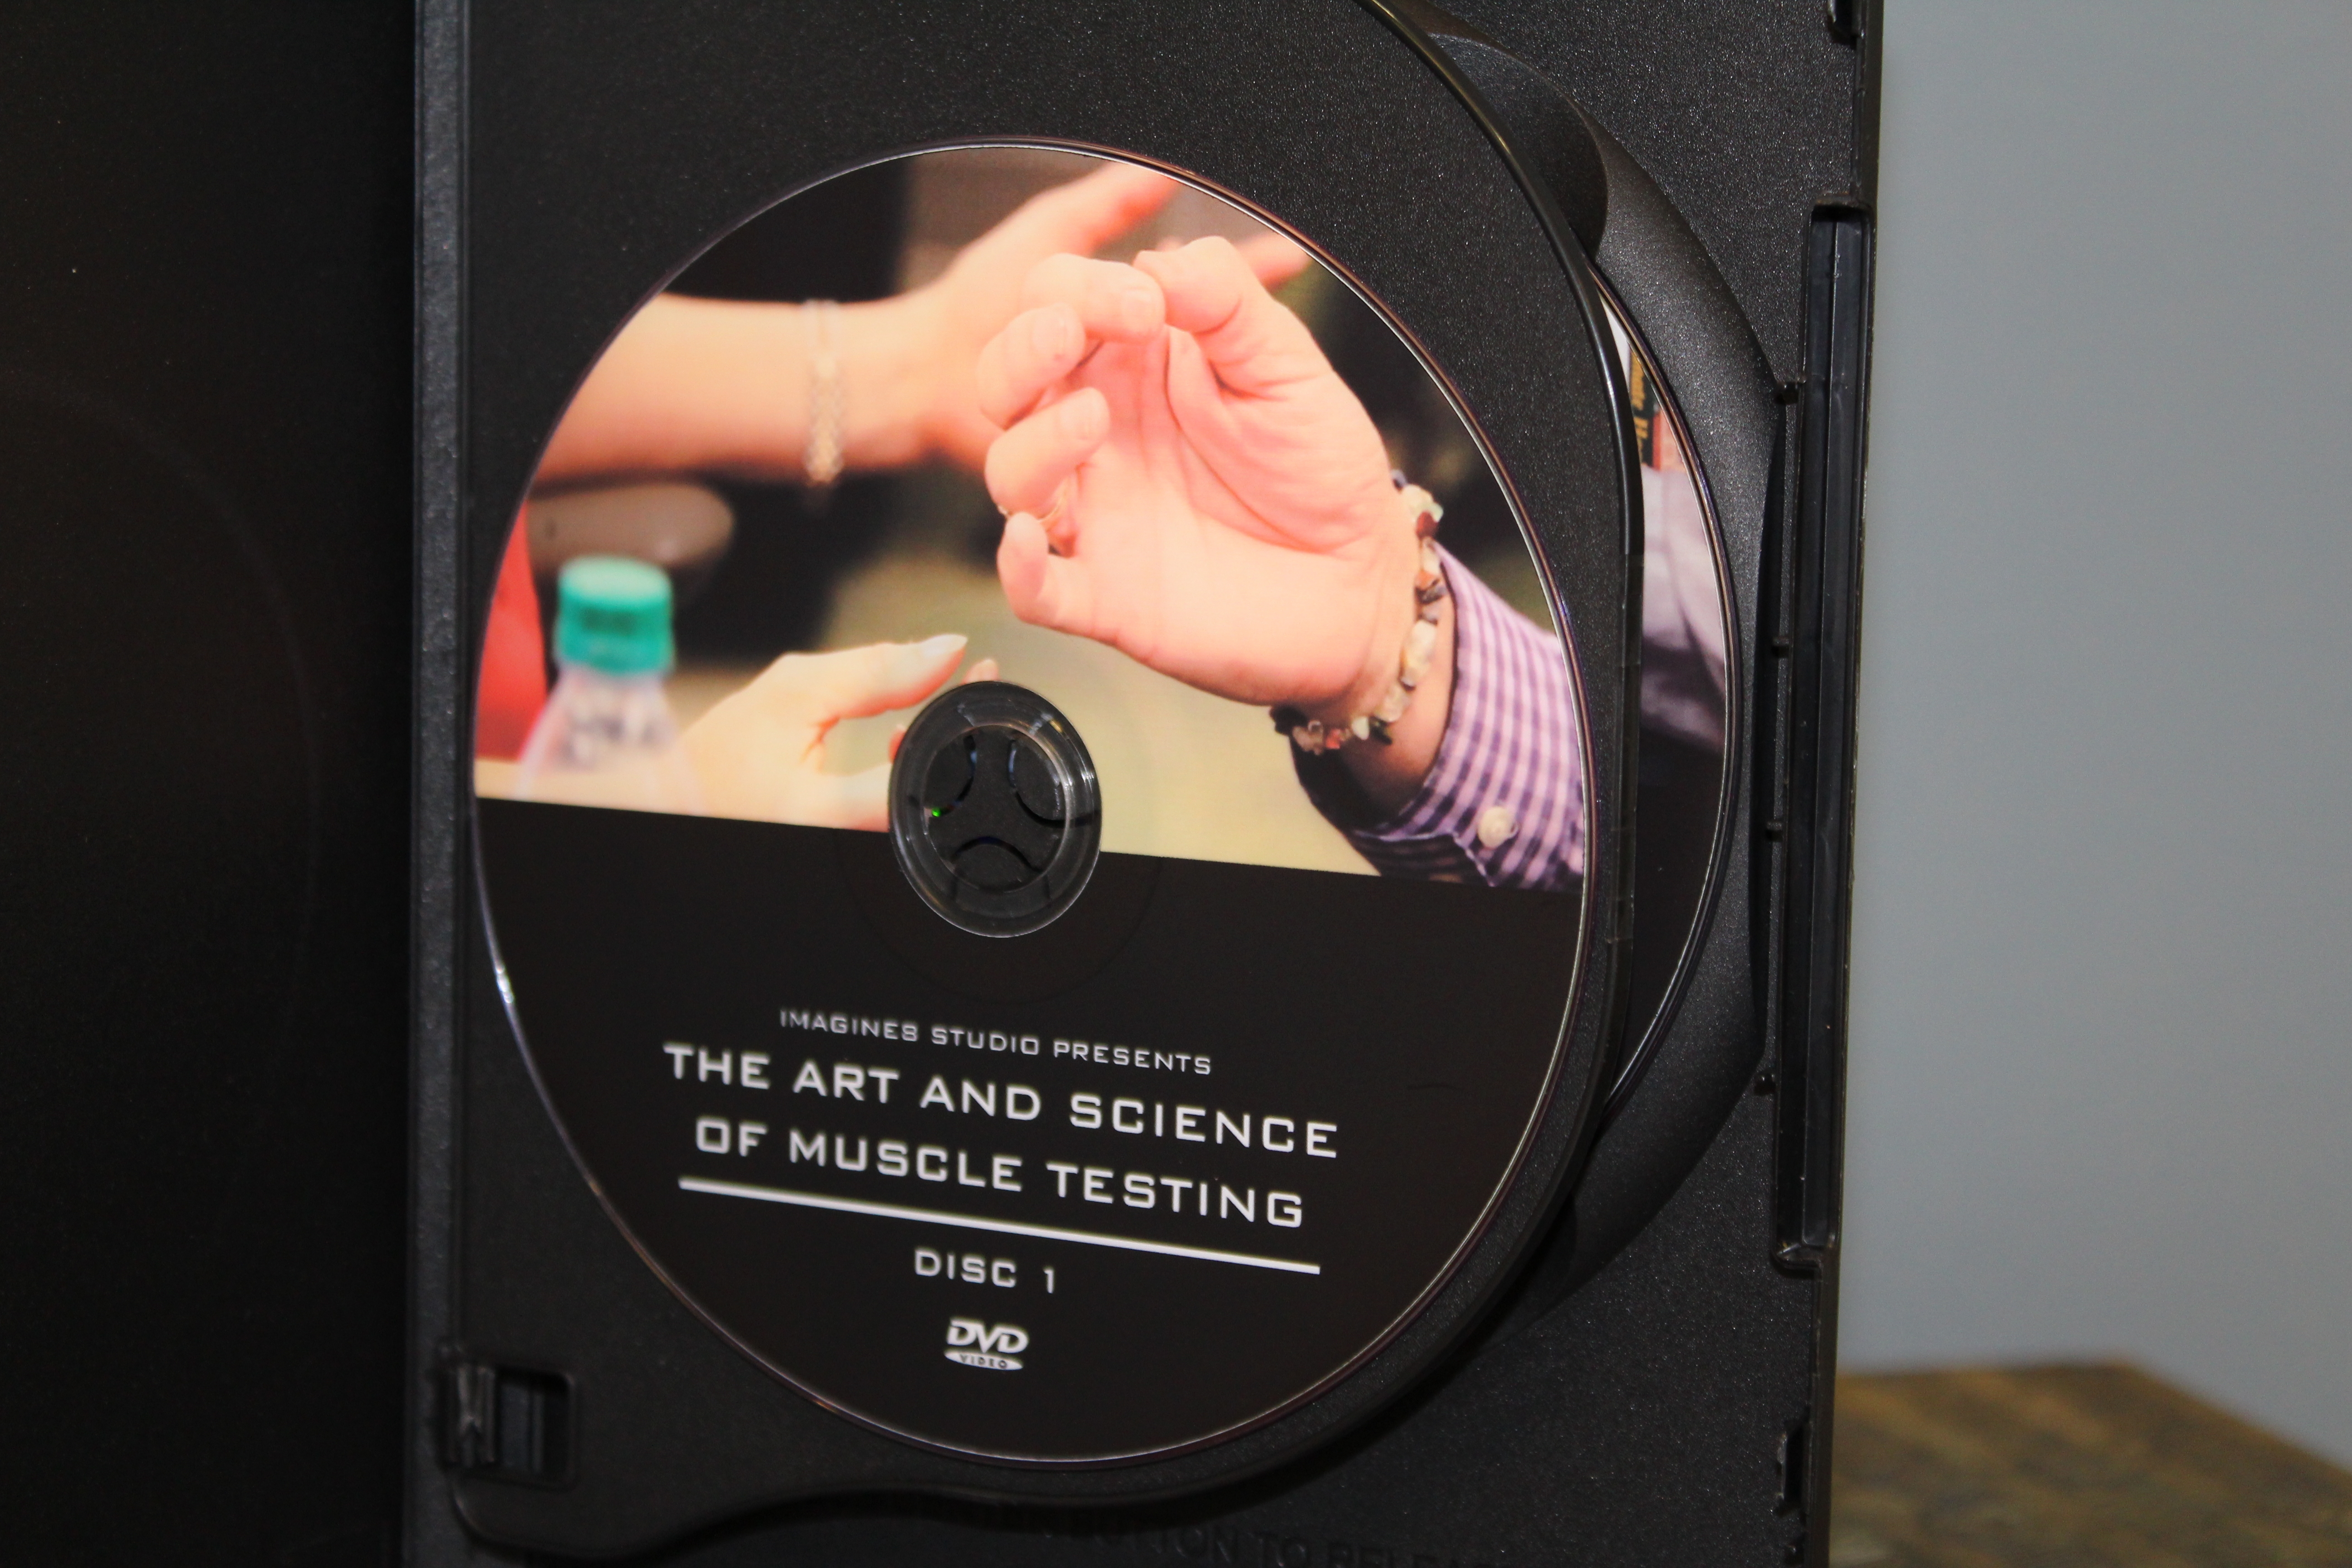 The Art and Science of Muscle Testing